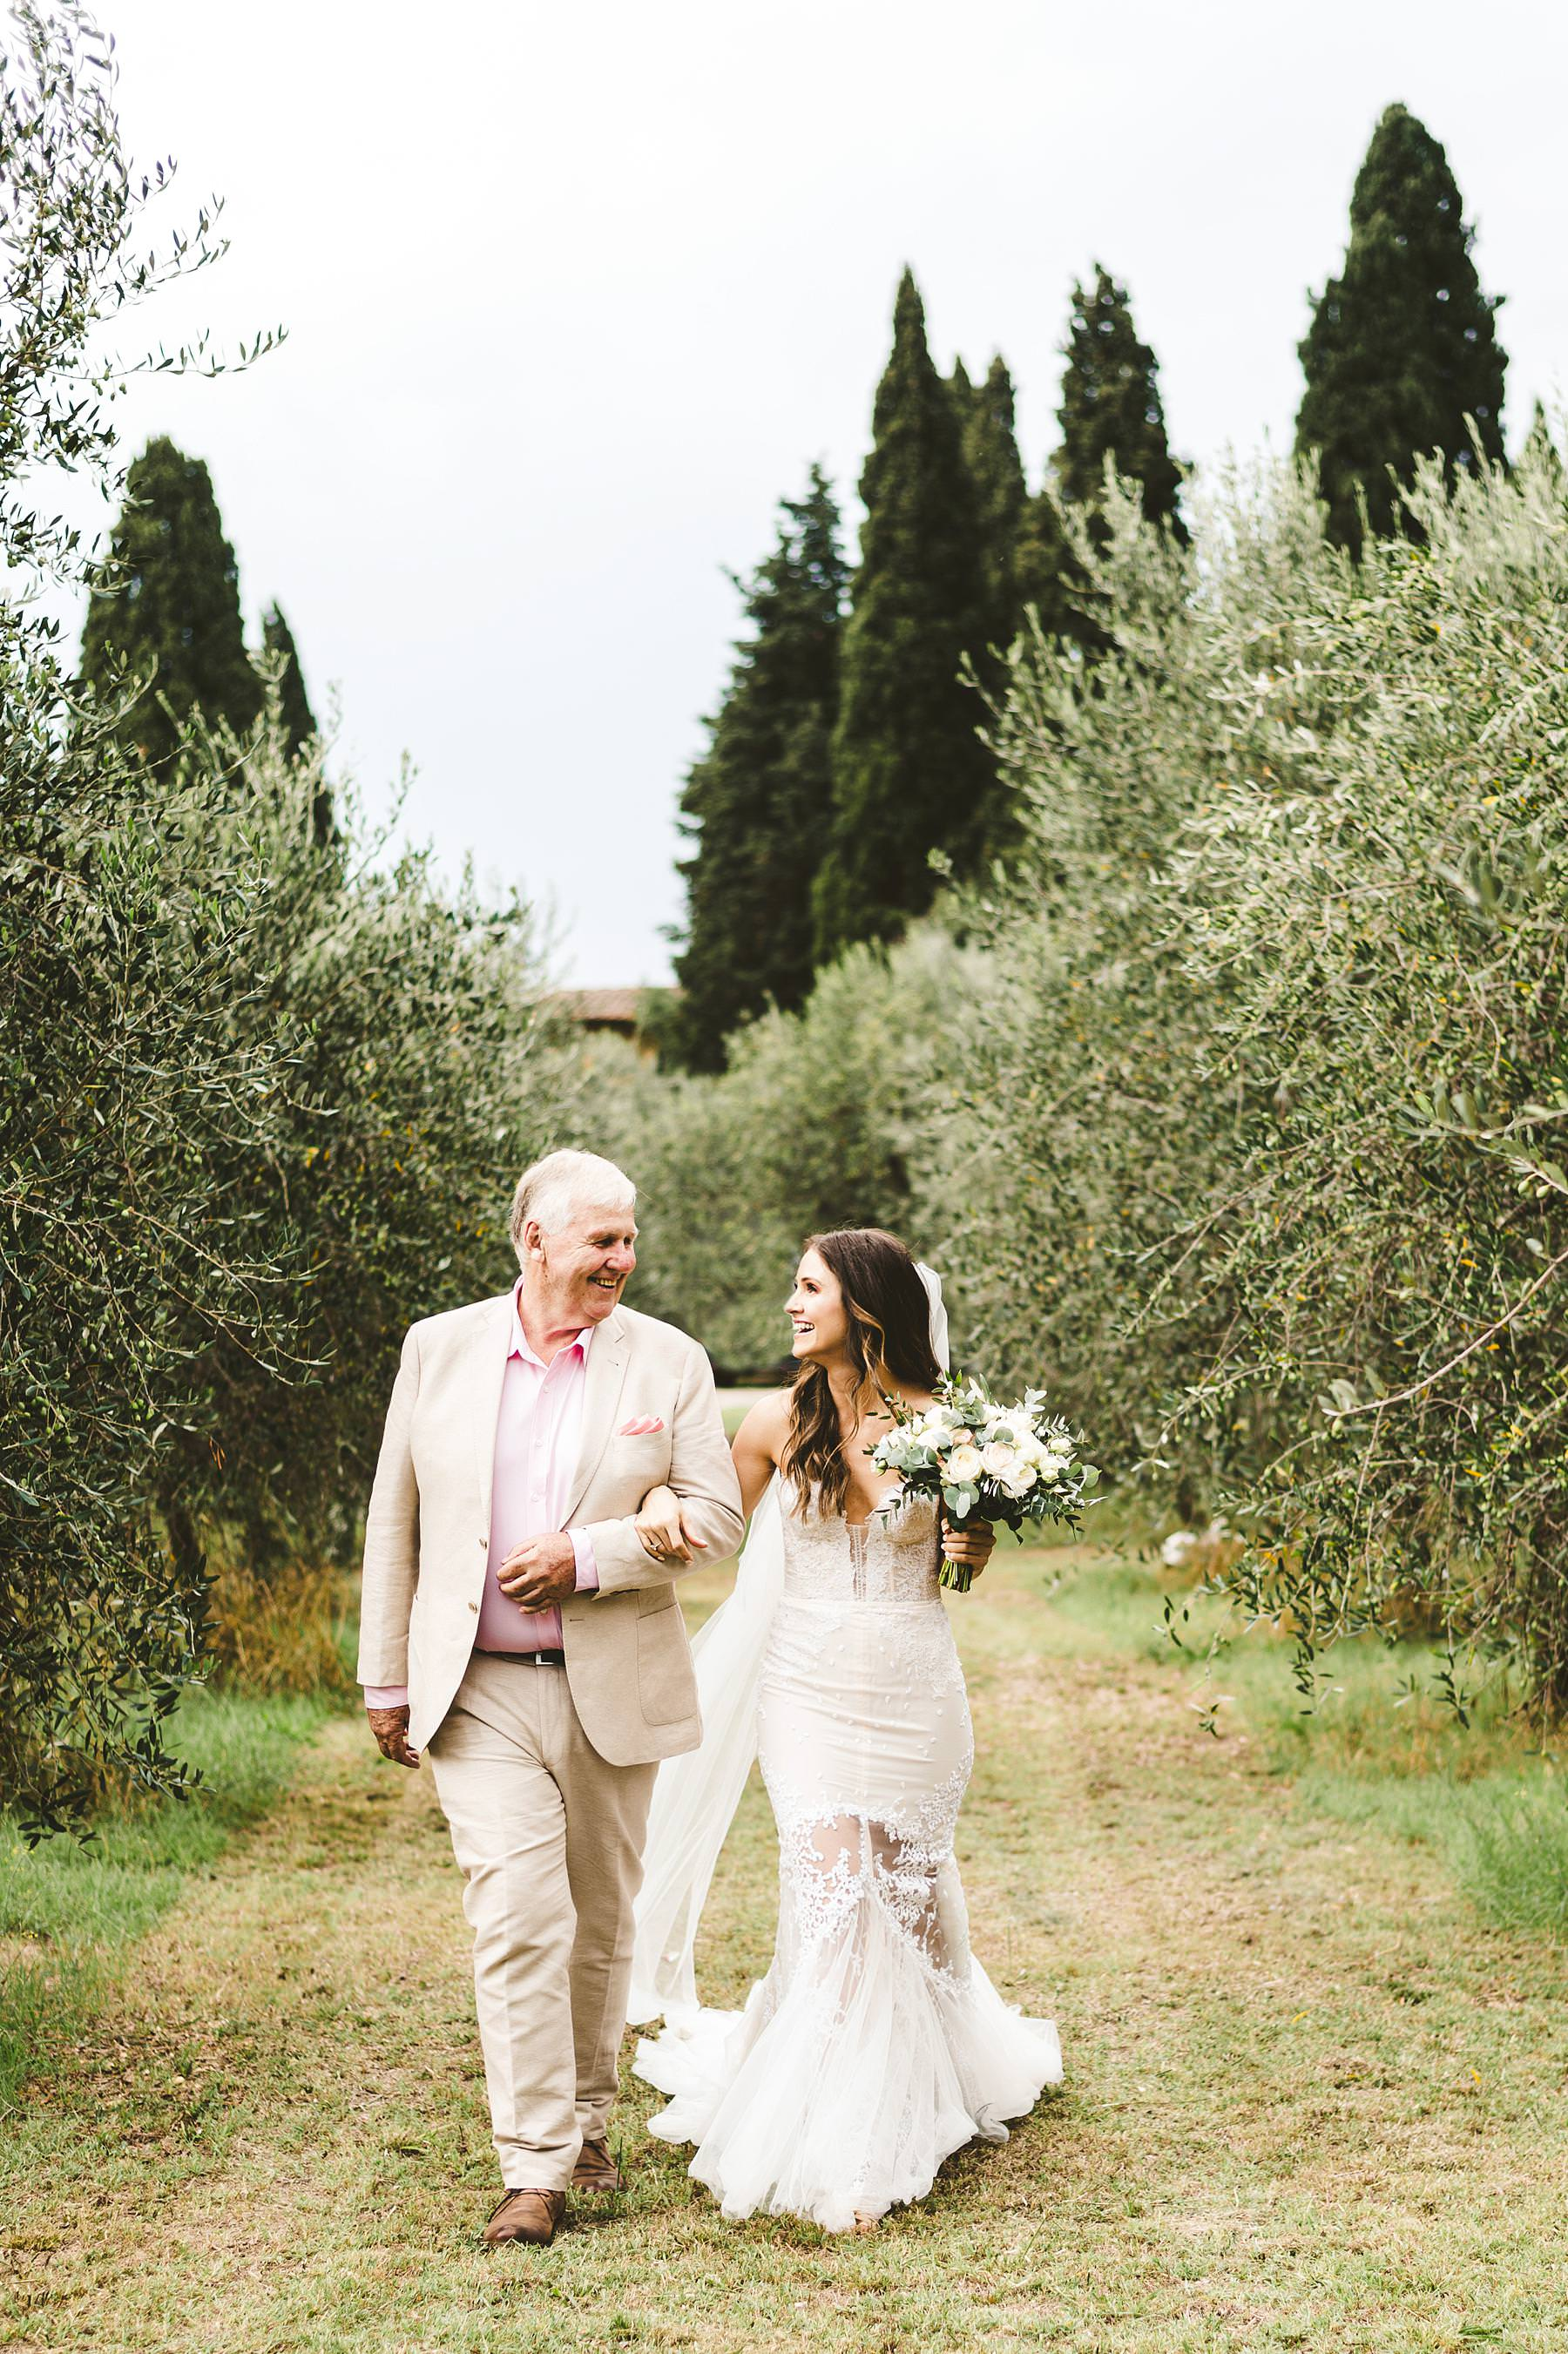 Lovely bride walks down the aisle in the middle of Olive groves of the historical residence of Villa Il Poggiale in the countryside of Chianti